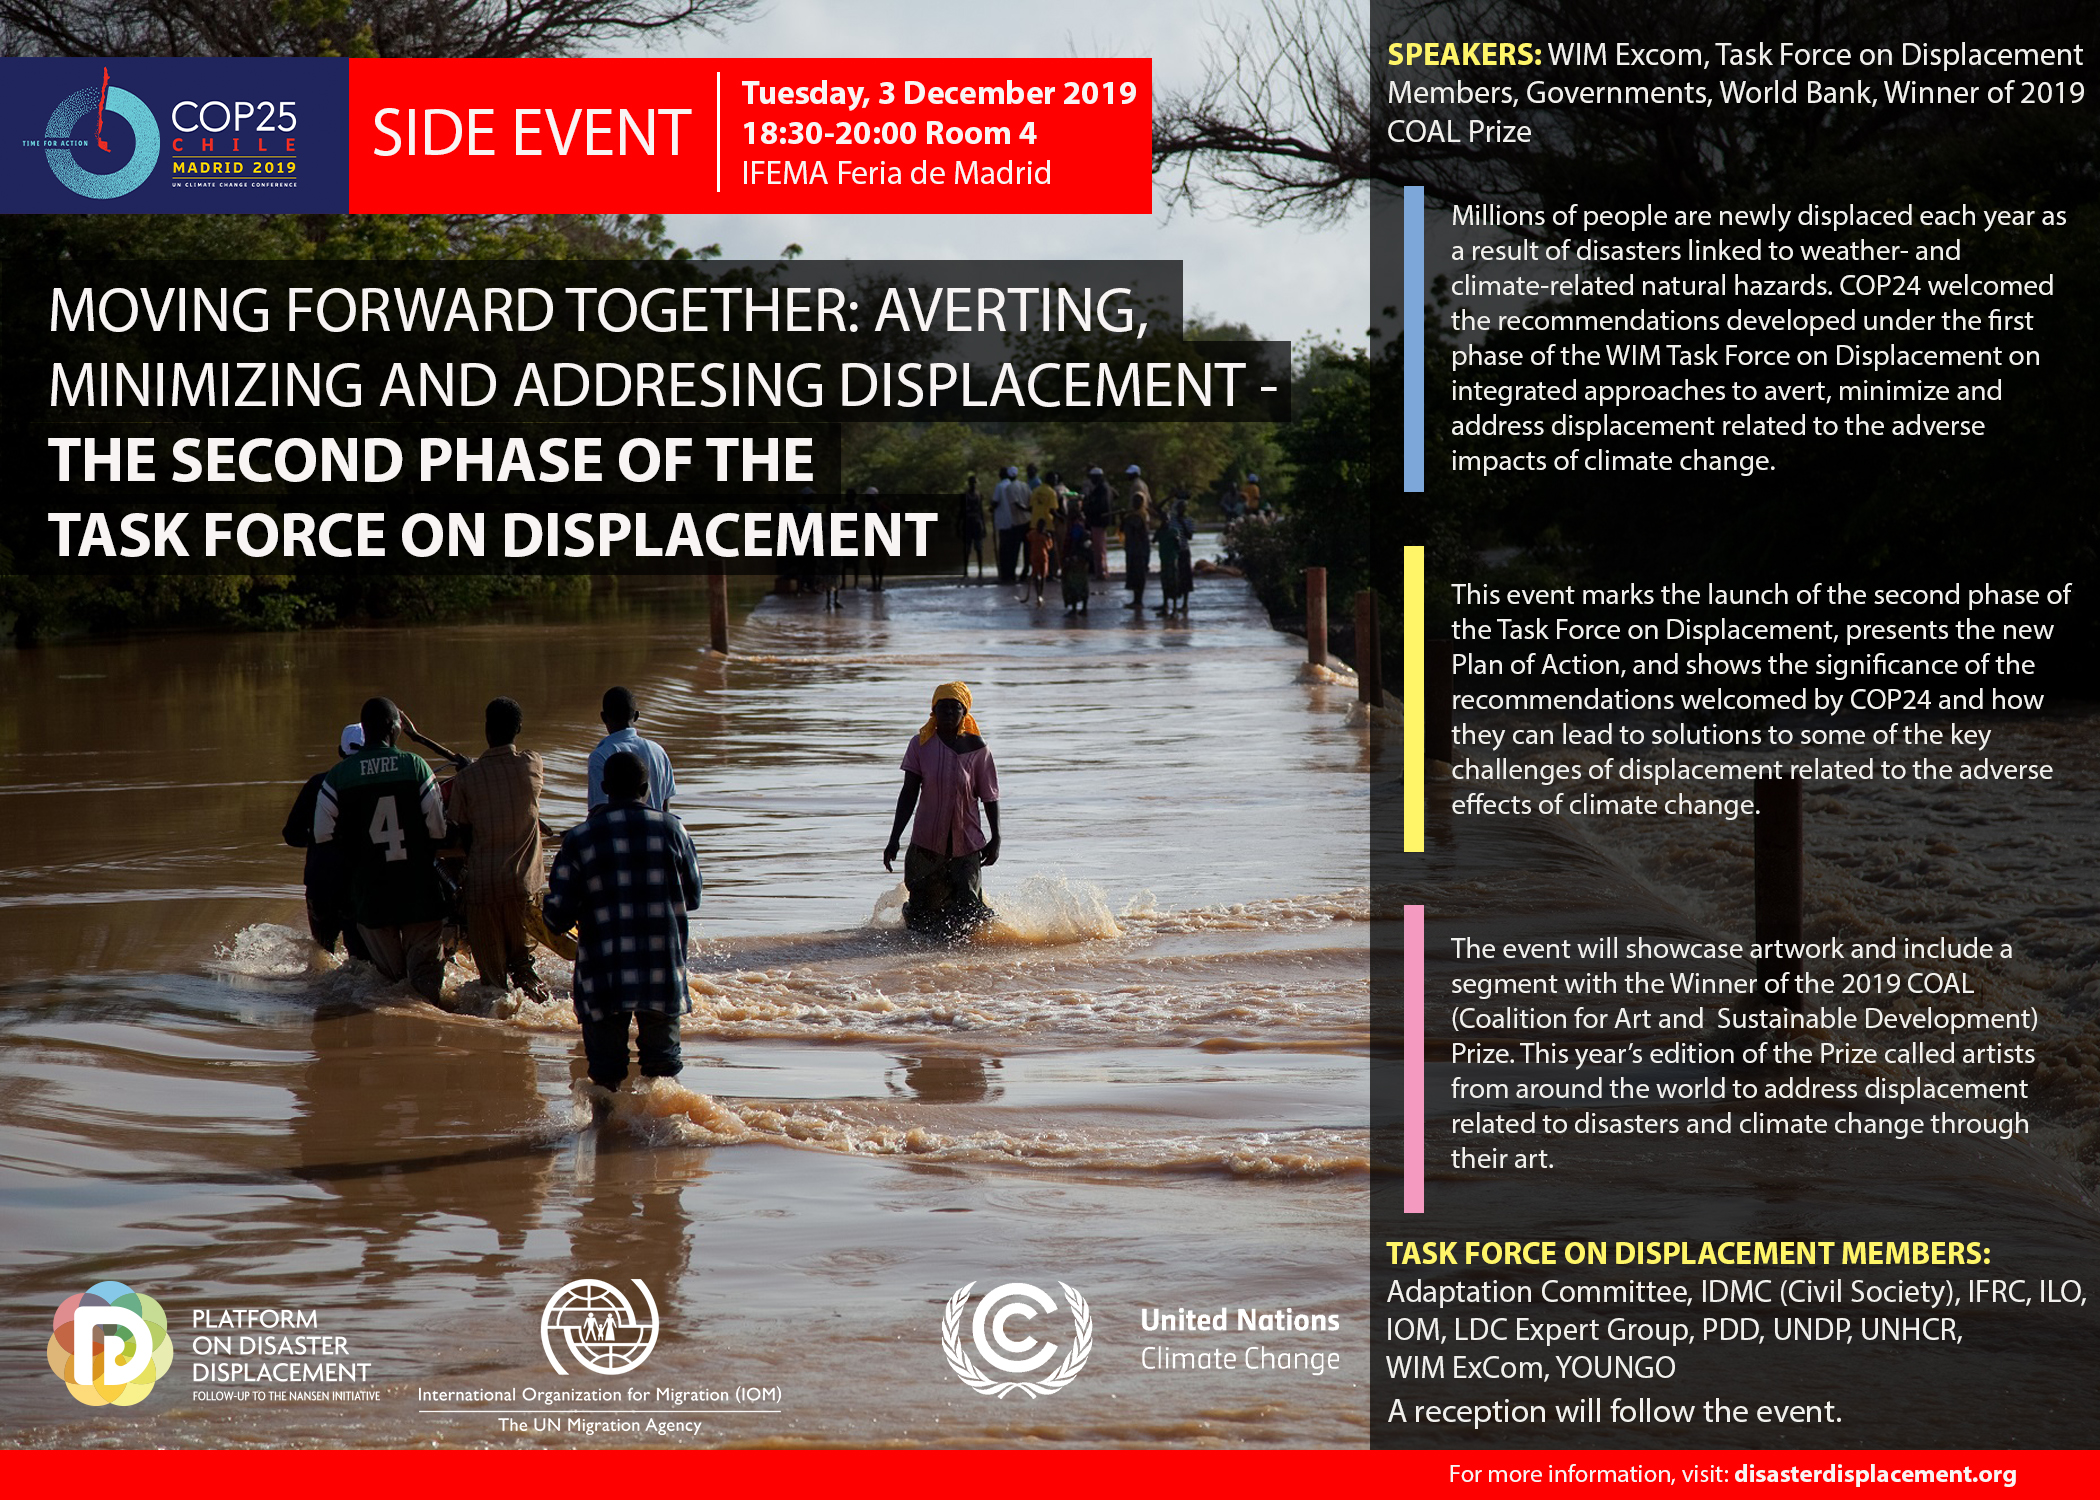 COP25 Side-event: Moving Forward Together: Averting, Minimizing And Addressing Displacement – The Second Phase Of The Task Force On Displacement